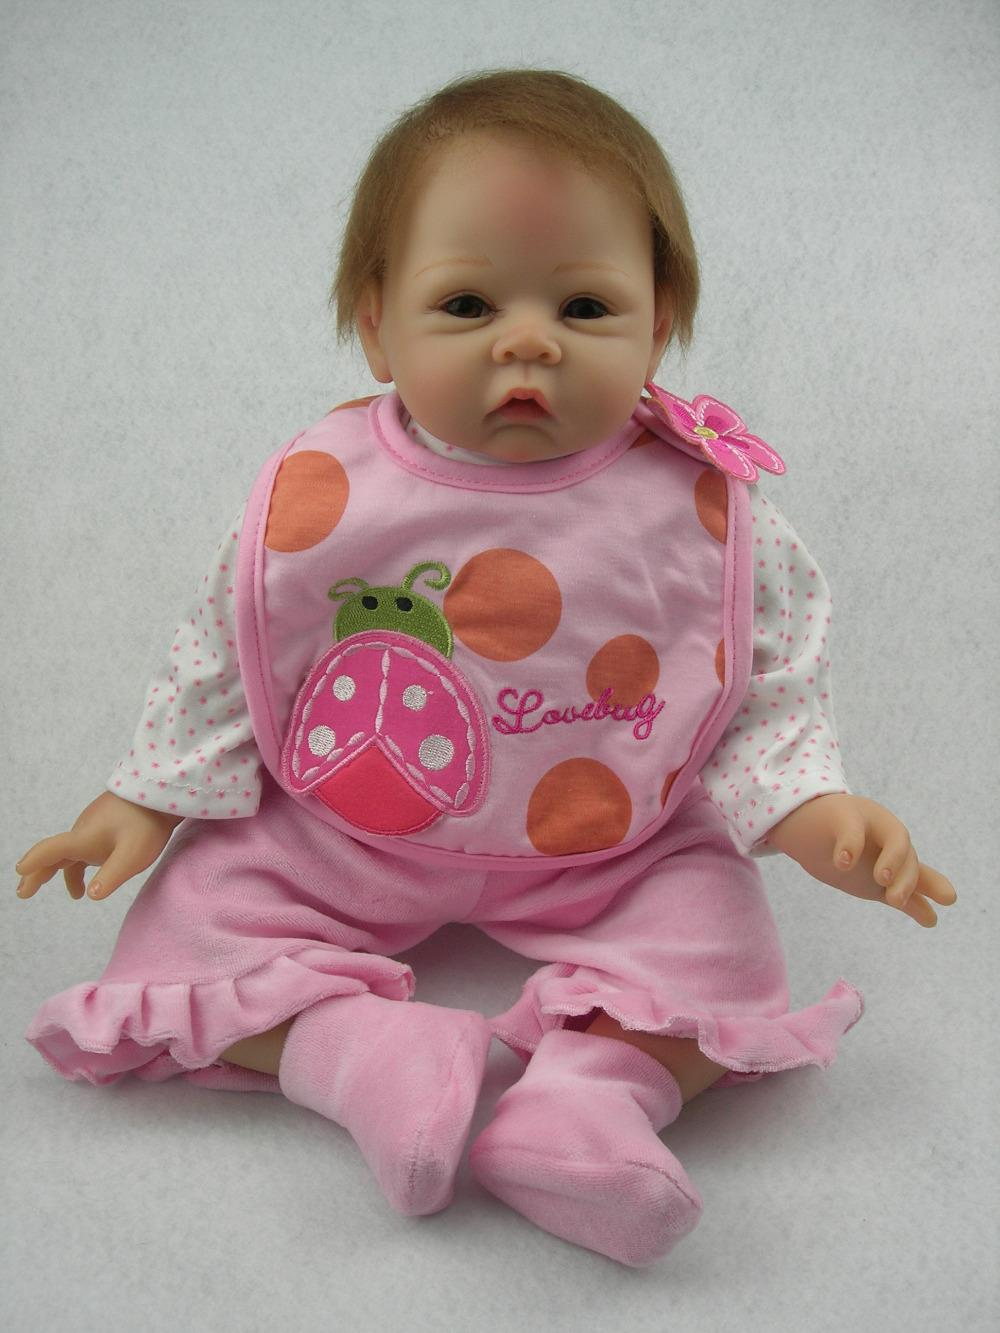 Reborn Baby Doll Soft Silicone Vinyl Baby Boy 22inch Magnetic Mouth Doll Gift US